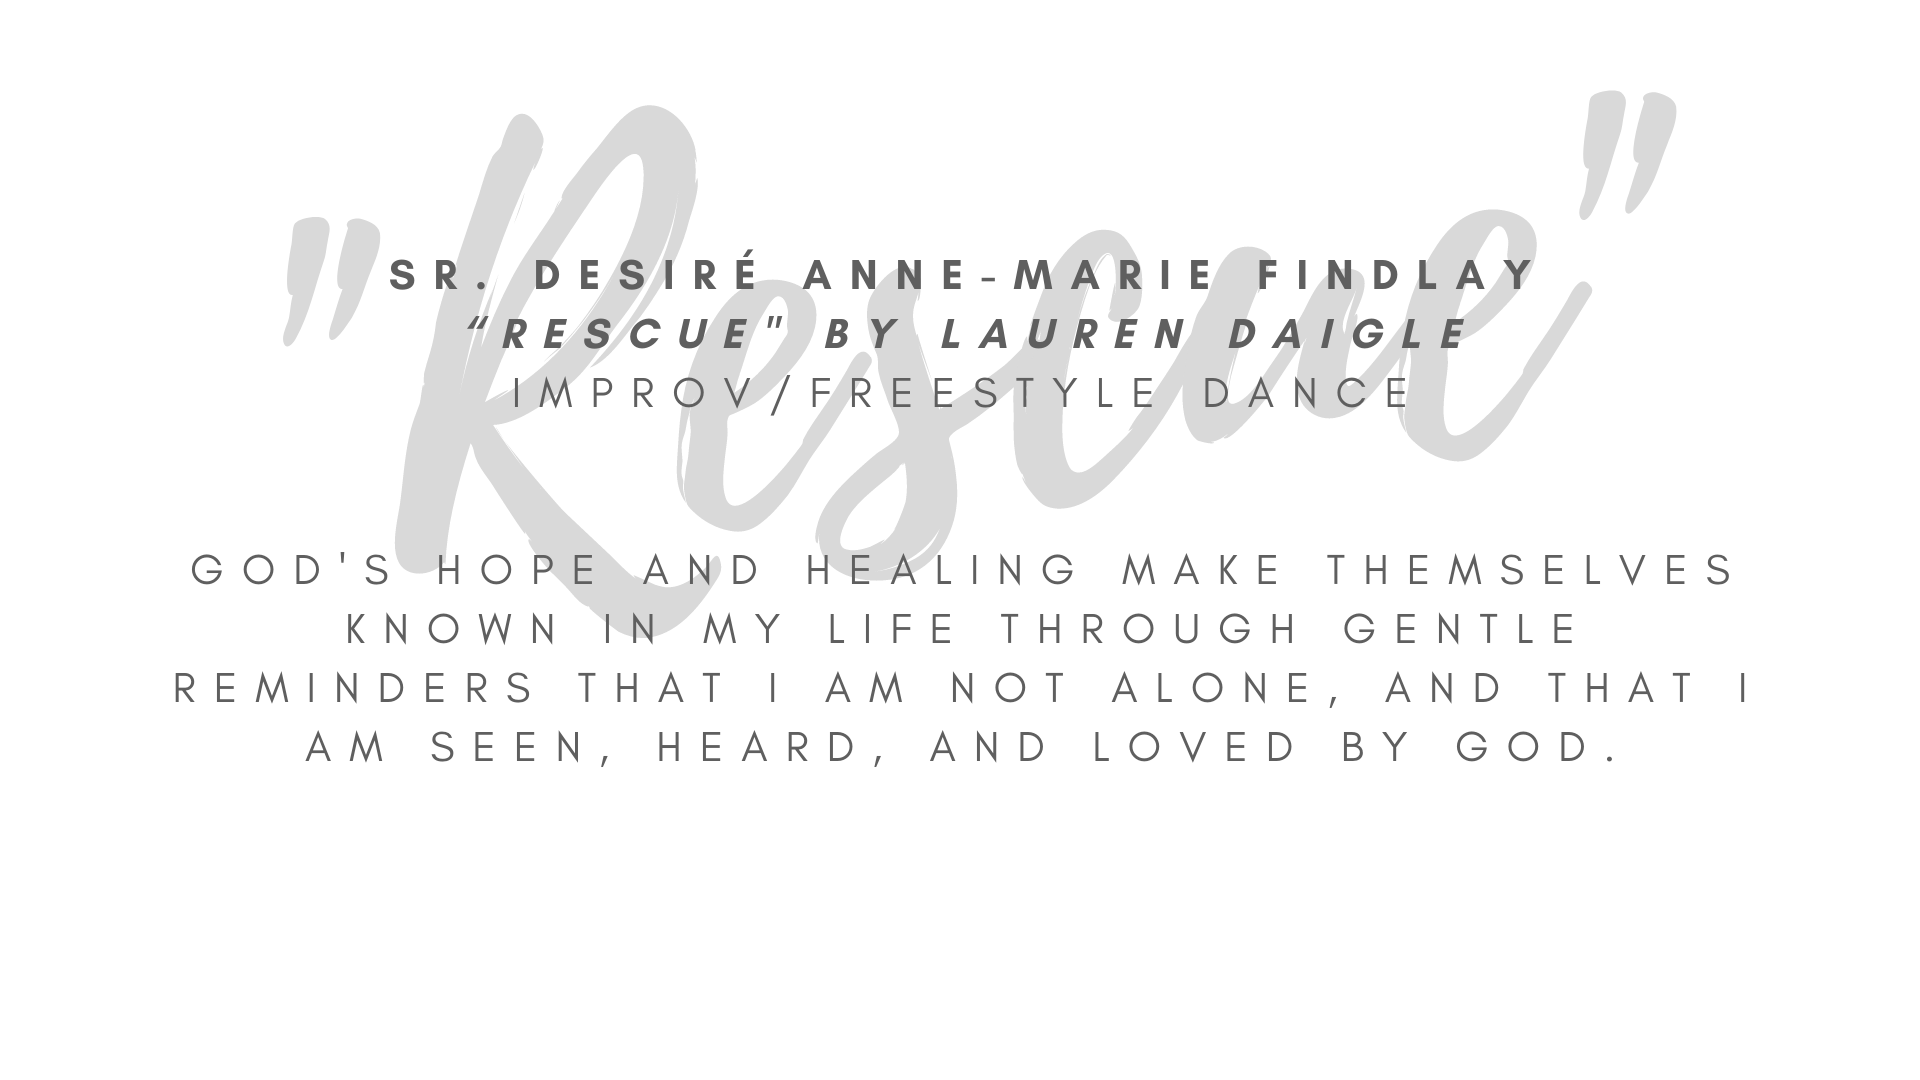 "Sr. Desiré Anne-Marie Findlay ""Rescue"" by Lauren Daigle Improv/freestyle dance  I chose this song because it reminds me that God is here with me, especially in the mess and in the storms of life. God's hope and healing make themselves known in my life through gentle reminders that I am not alone, and that I am seen, heard, and loved by God. It's this love that ""rescues"" me and makes me whole.  ARTIST STATEMENT My name is Sister Desiré Anne-Marie Findlay and I am a member of the Congregation of the Sisters of Saint Felix of Cantalice, a Franciscan community otherwise known as the Felician Sisters. I grew up in Albuquerque, NM but currently live near Pittsburgh, PA where I minister as the Vocation Director for my congregation. I have enjoyed writing, dancing, and drawing since I was a child. While I haven't taken any professional courses to improve my skills, I still enjoy writing, dance, and art as forms of prayer that enrich my relationship with God."